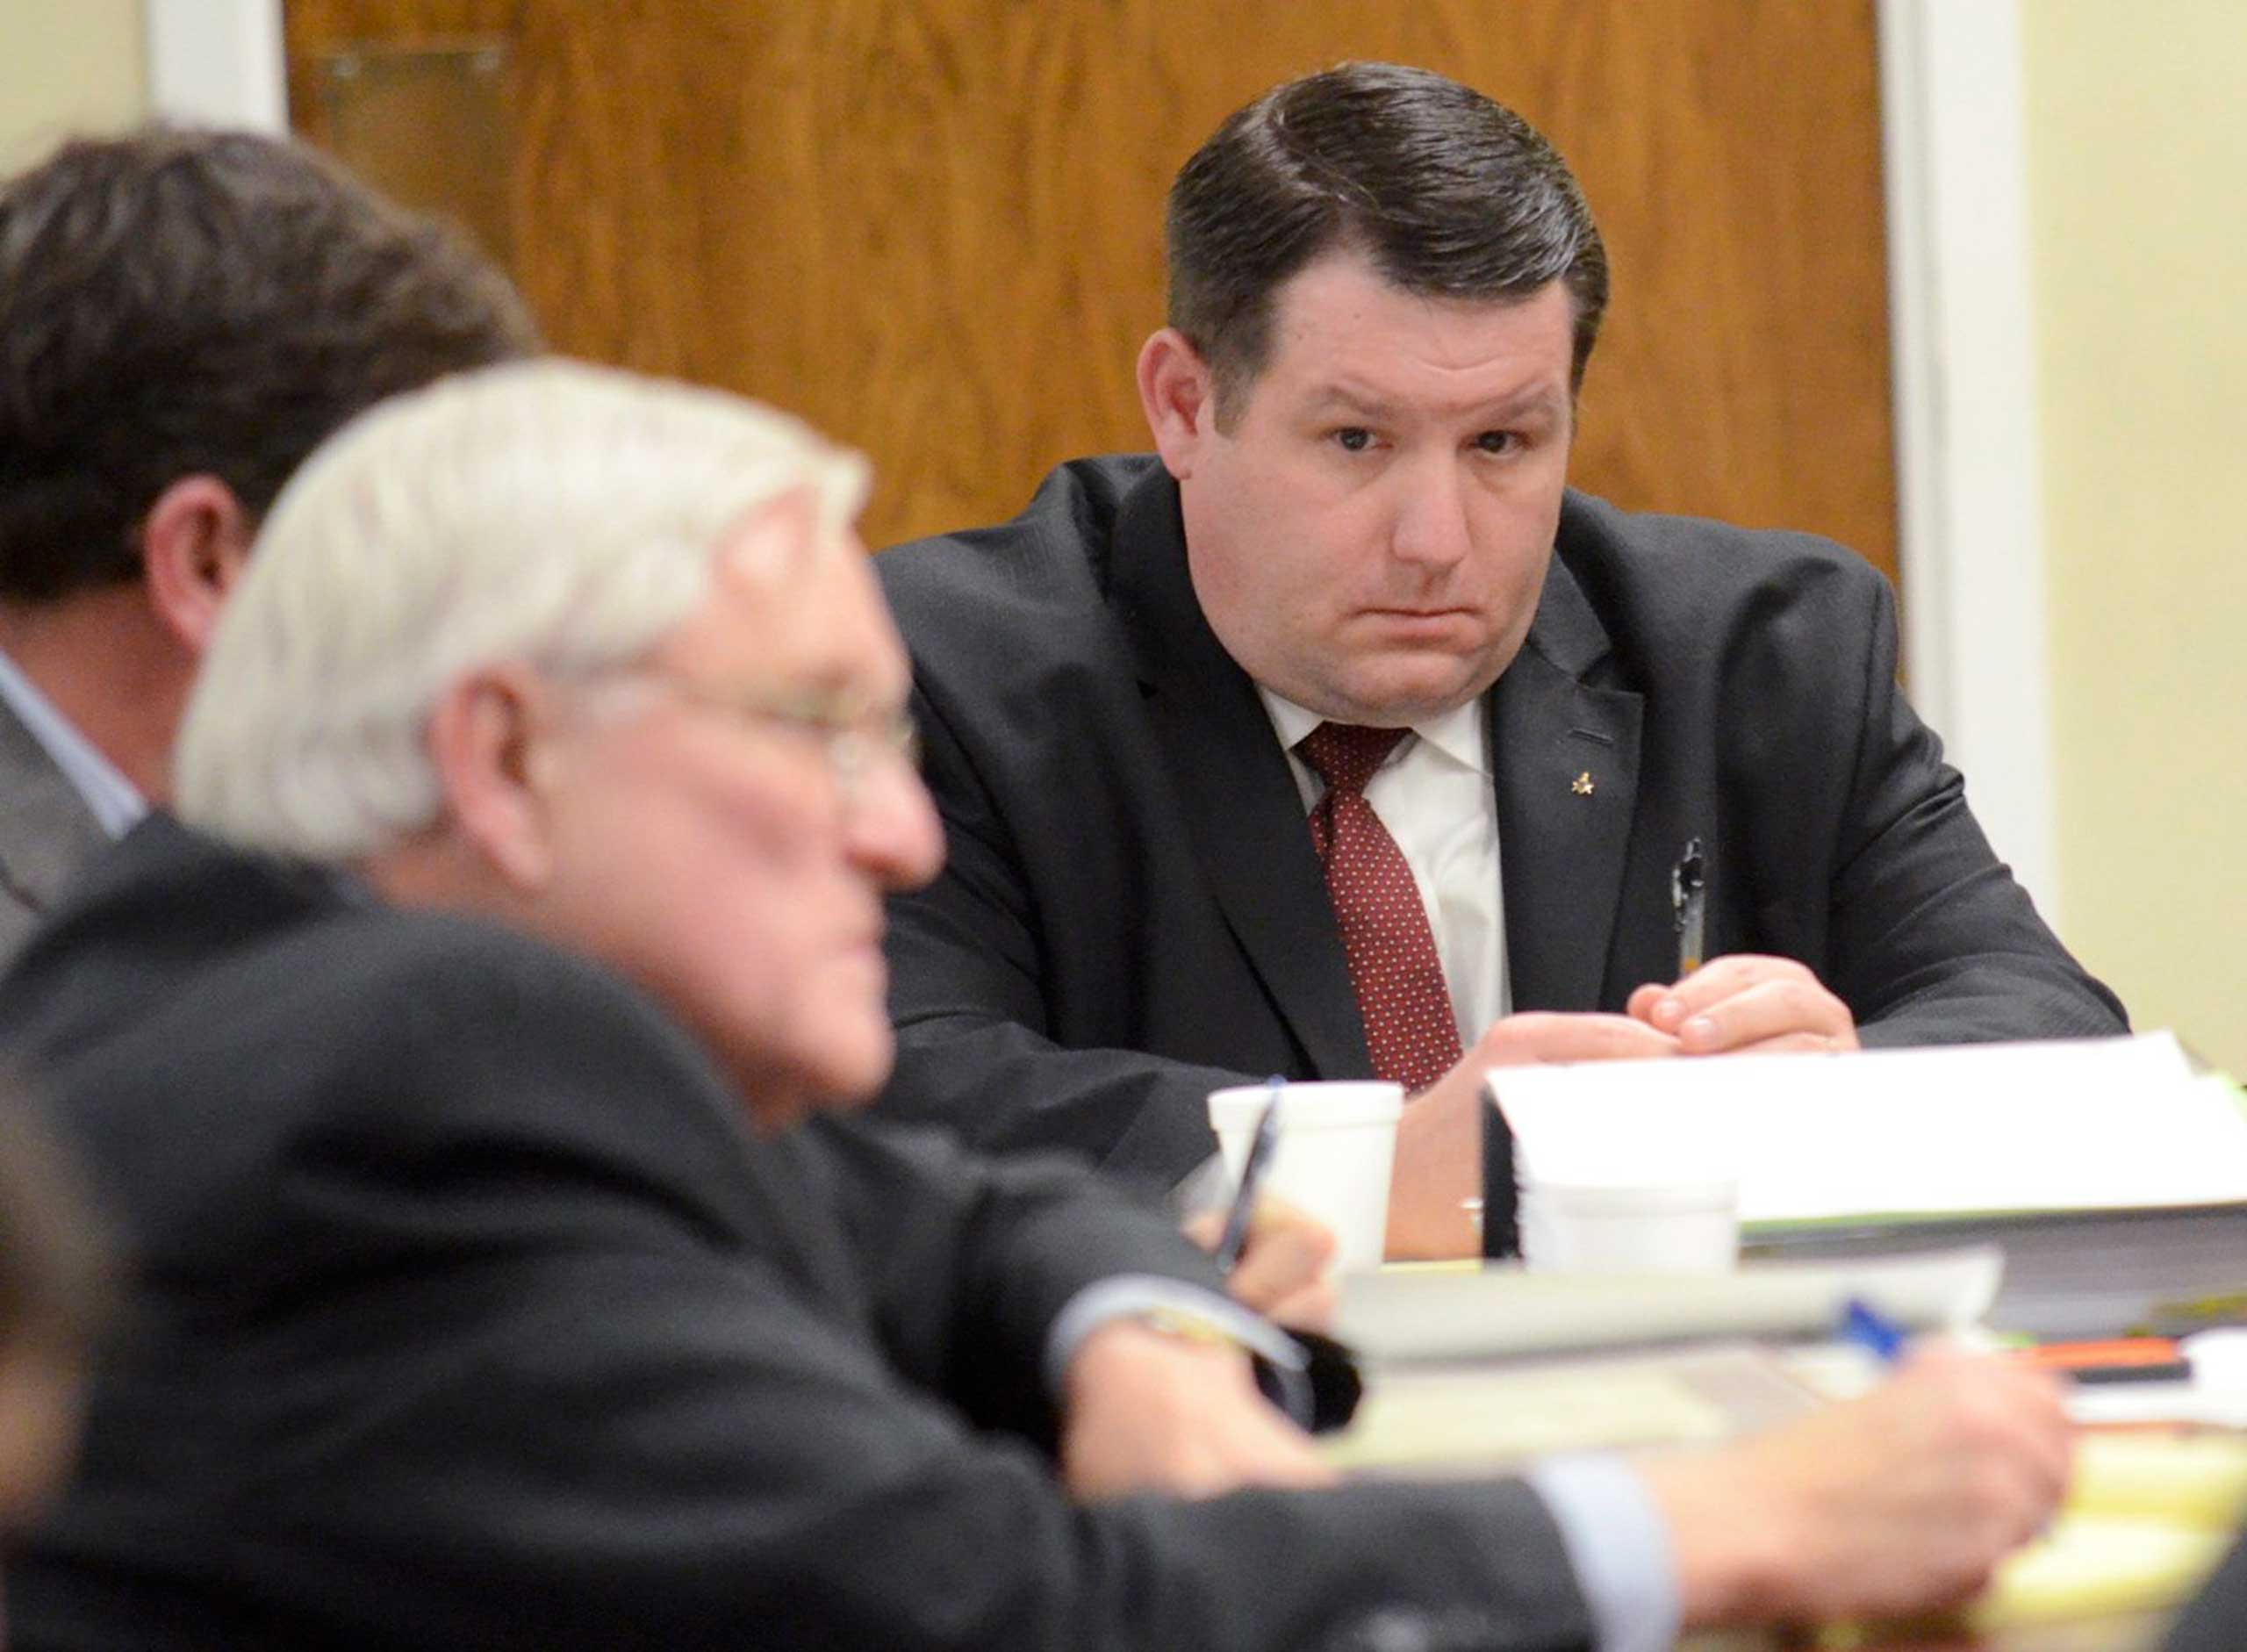 Former Eutawville Police Chief Richard Combs sits with lawyers on the second day of testimony in his trial for the murder of Bernard Bailey in Orangeburg, South Carolina, Jan. 8, 2015.